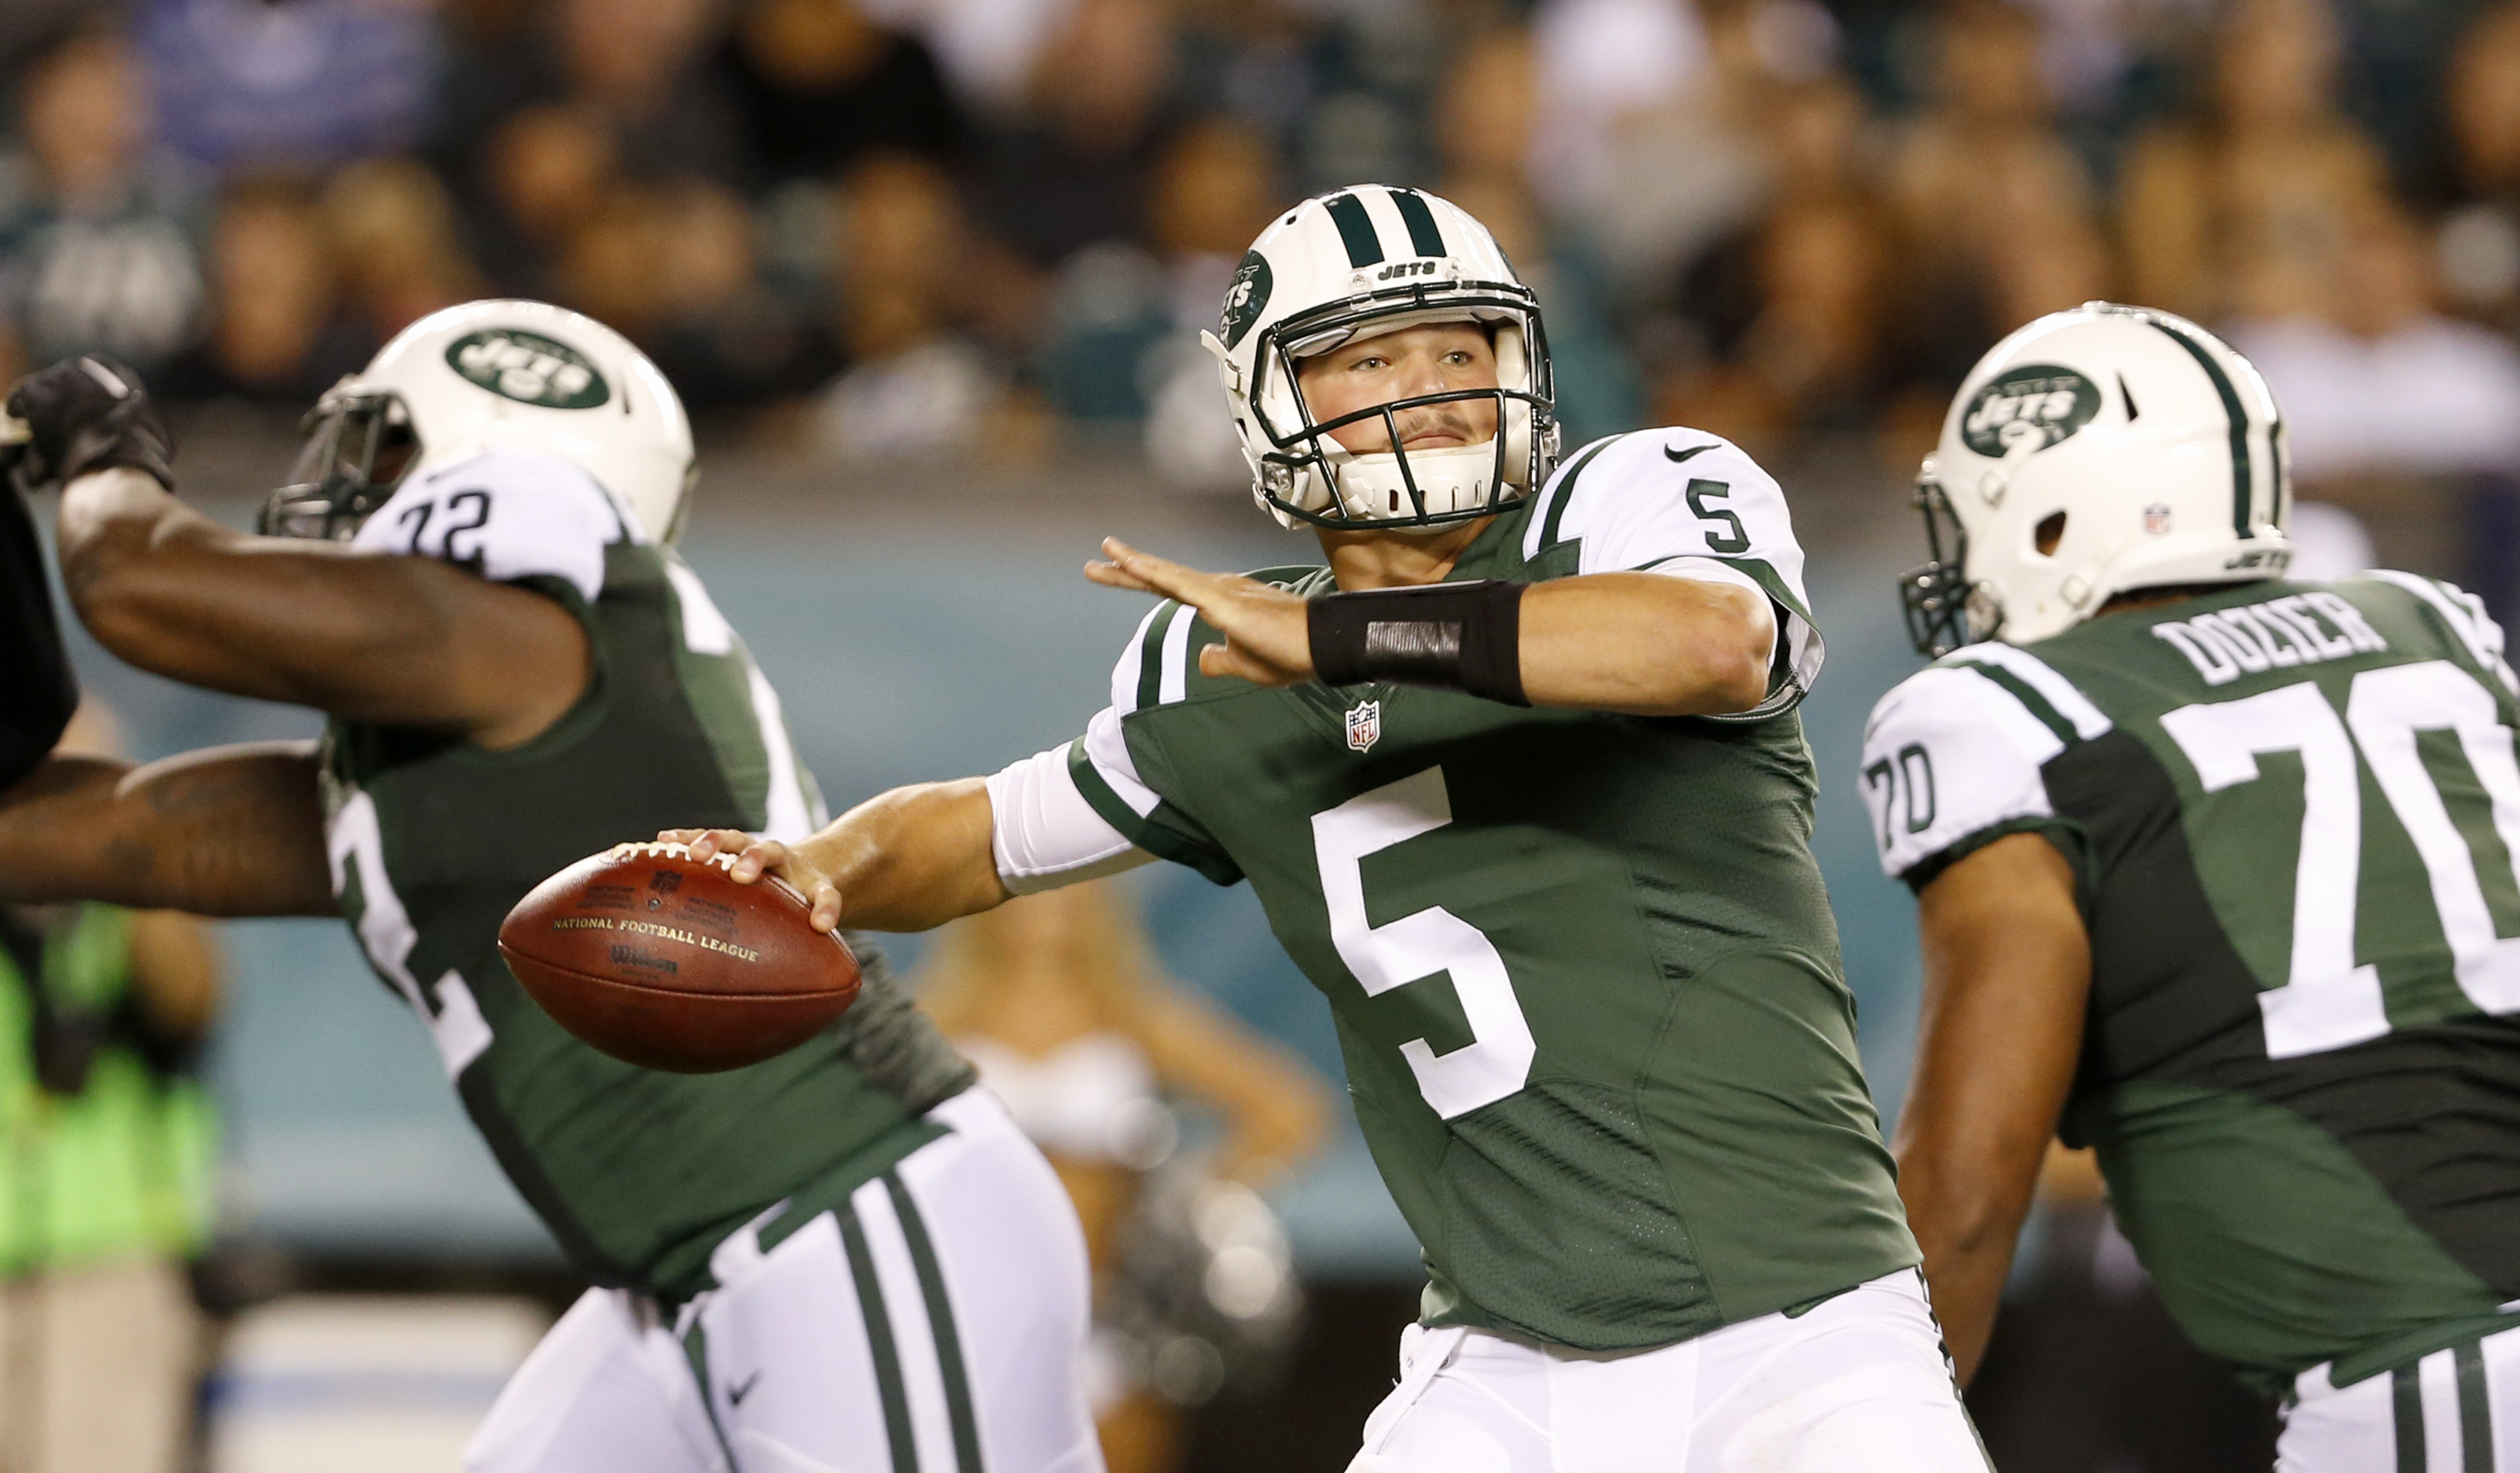 Christian Hackenberg hoped the chance to play in a real, live NFL game would come with the Jets, the team that drafted him, but it didn�t.